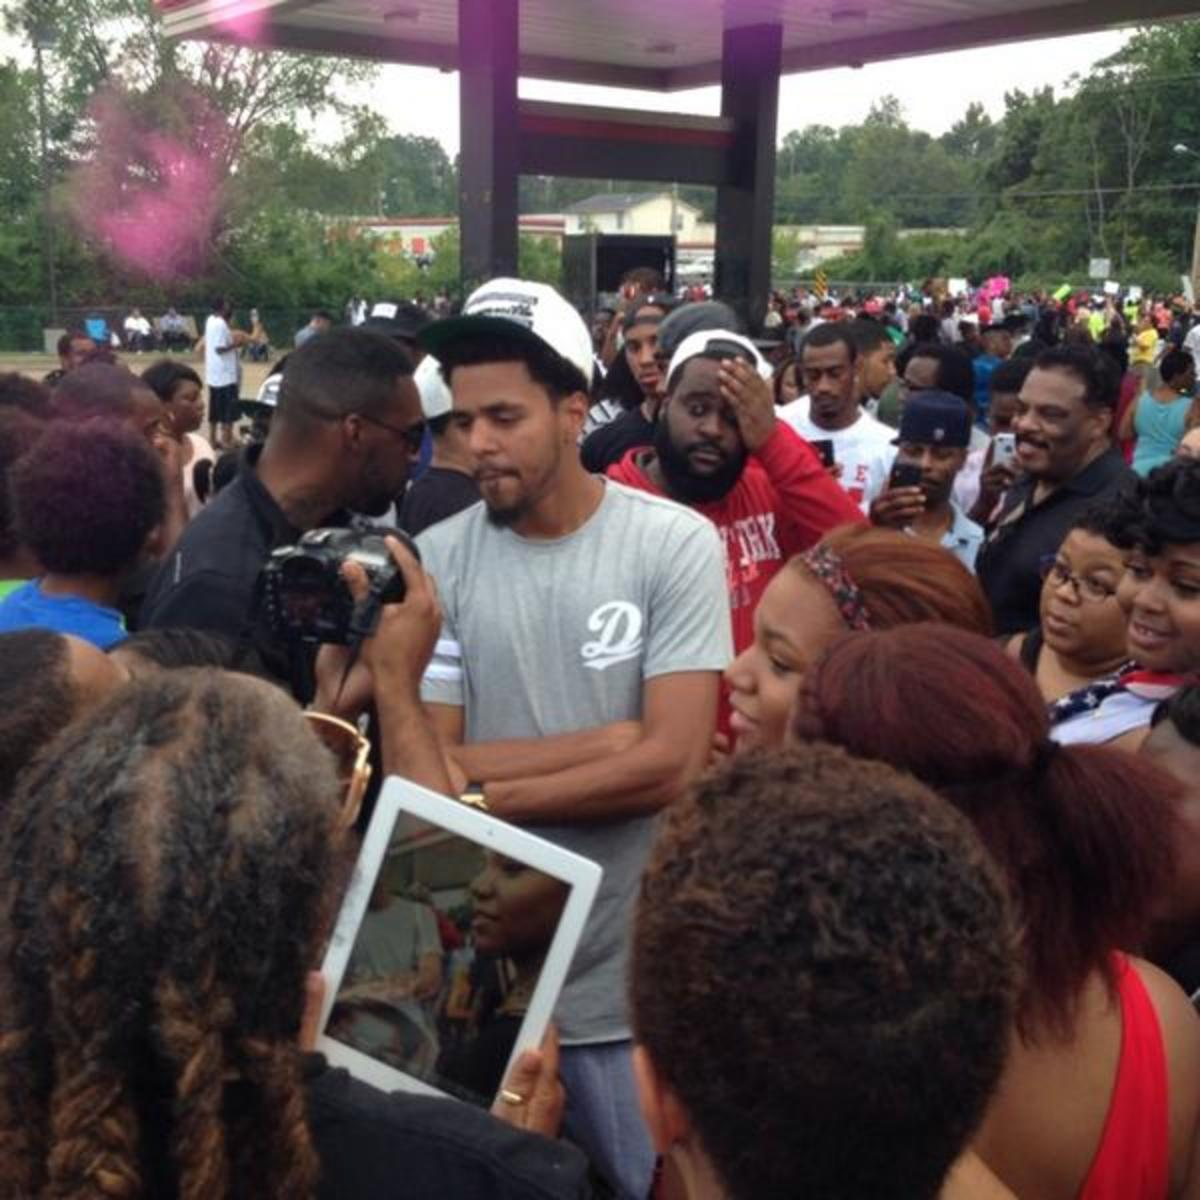 Cole proved he had something to say during the #Ferguson protests.  He just failed to say it as well as he could have,